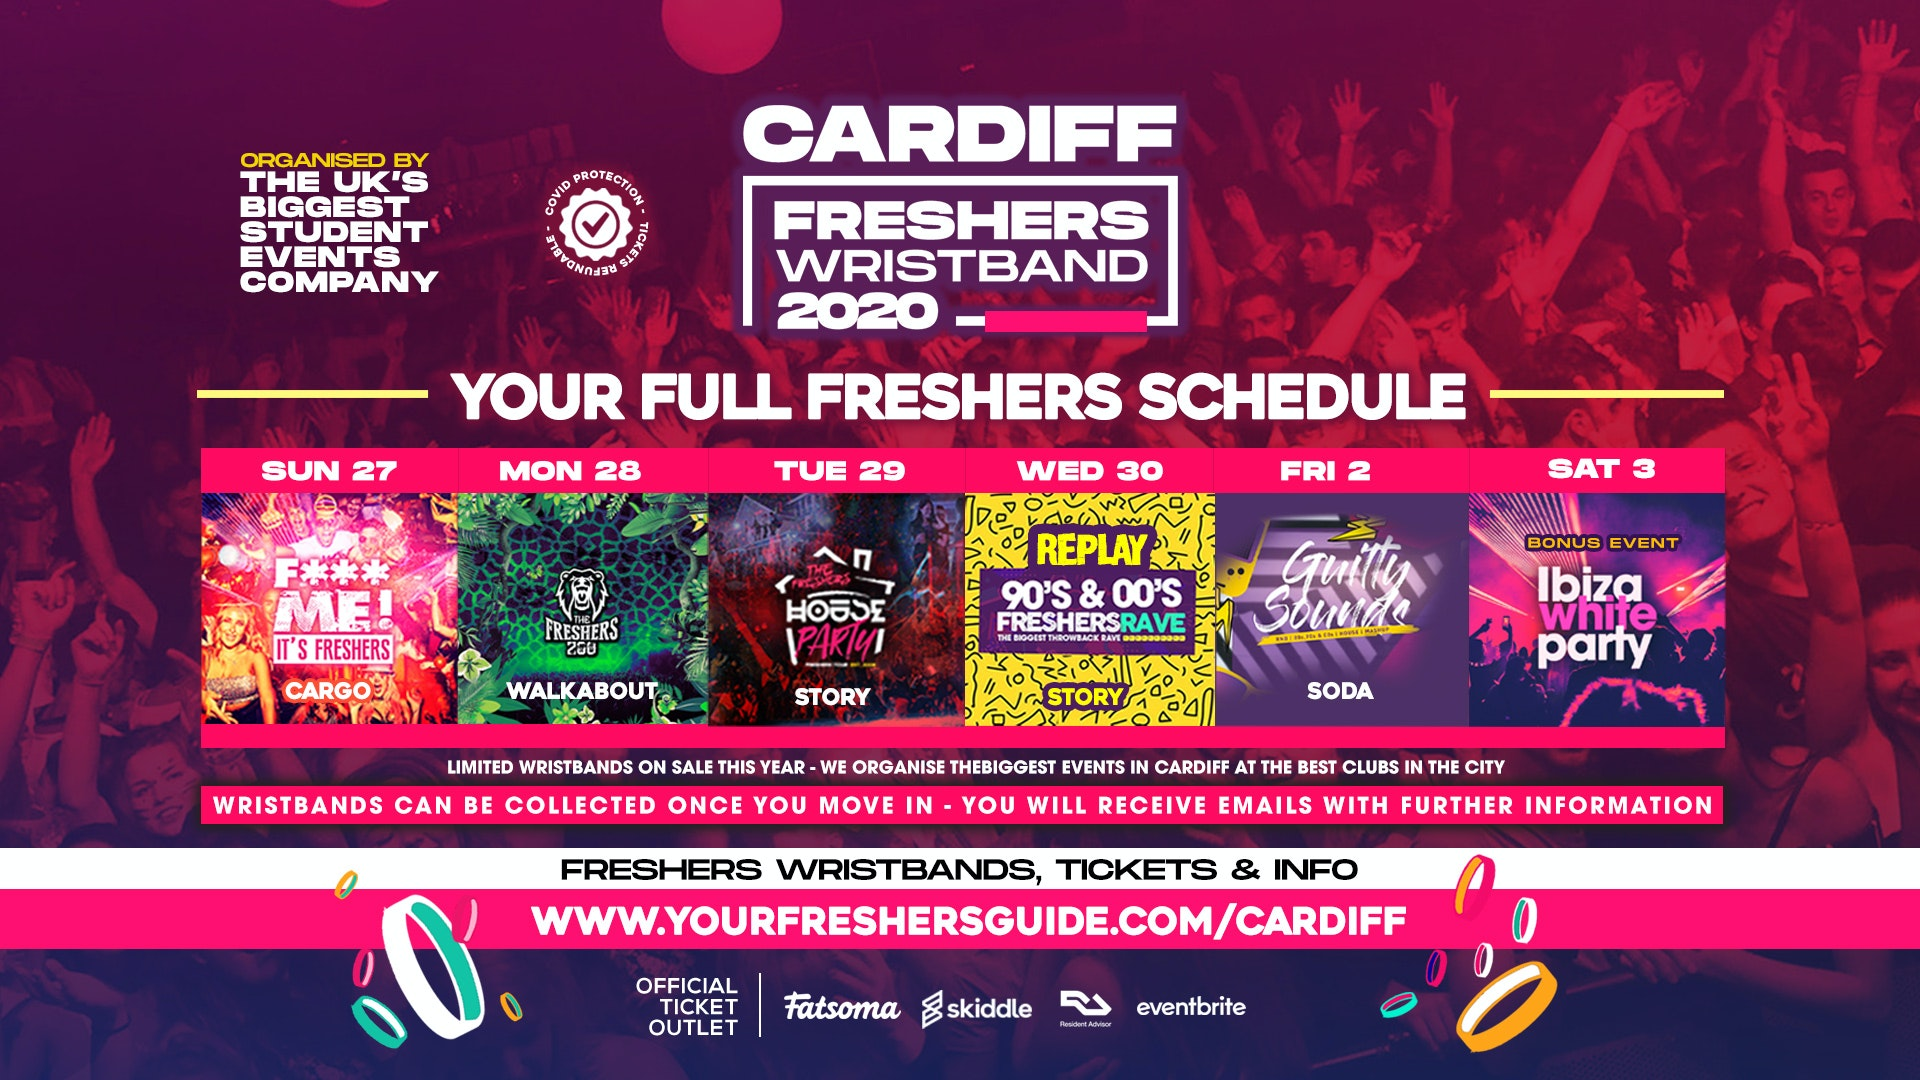 The Cardiff Official Freshers Wristband // Cardiff Freshers 2020